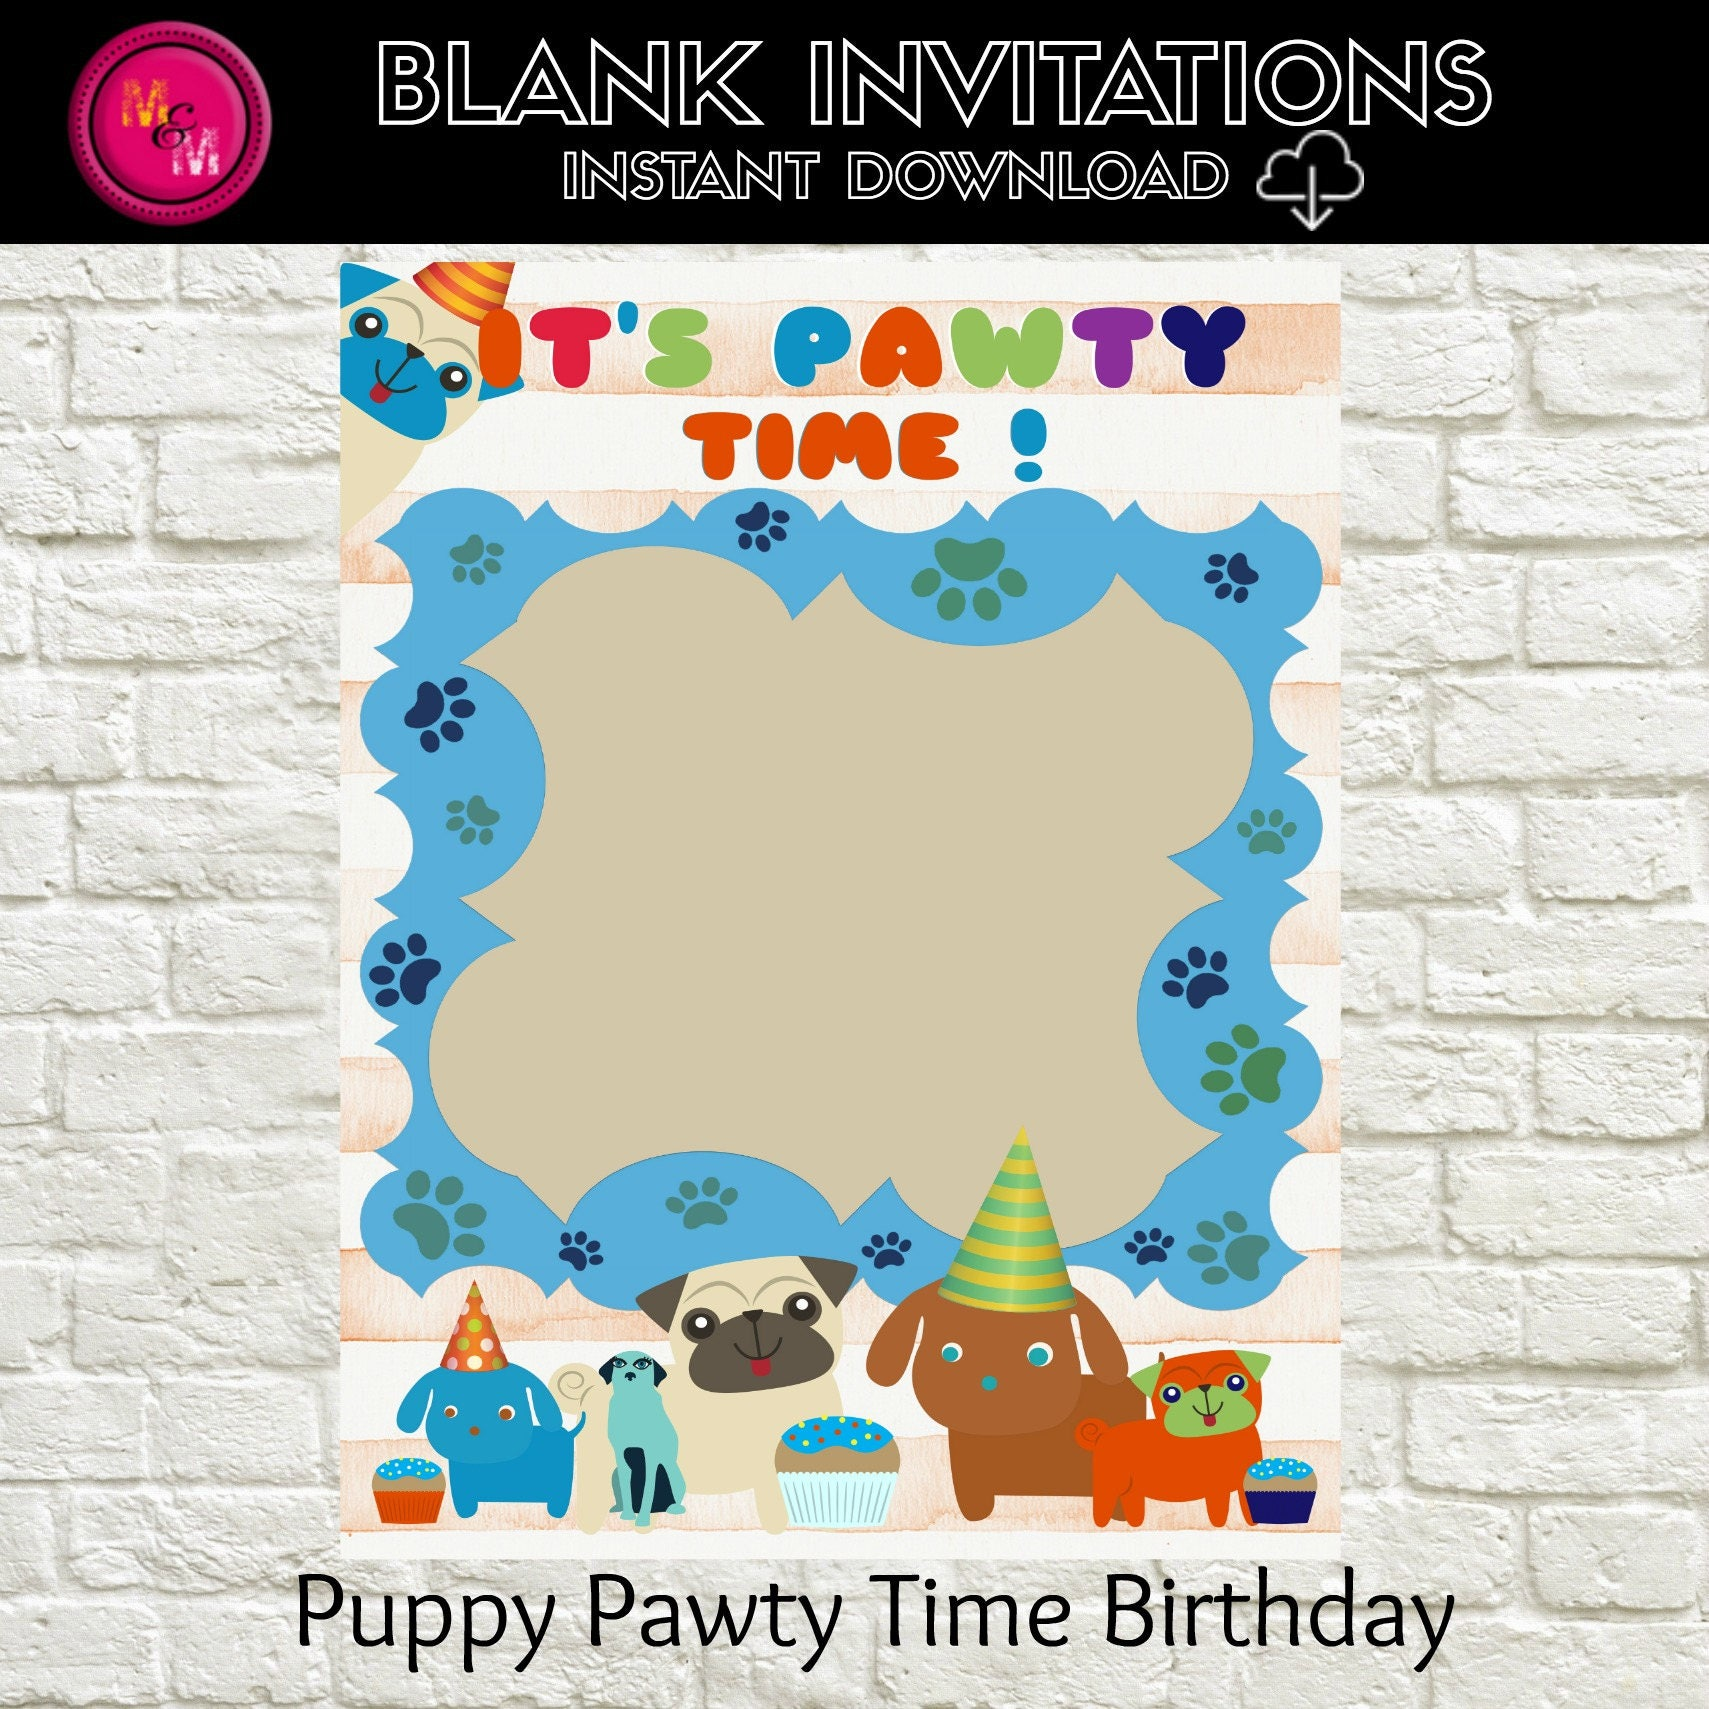 Puppy Birthday Invitation Blank-Instant Download Template | Etsy